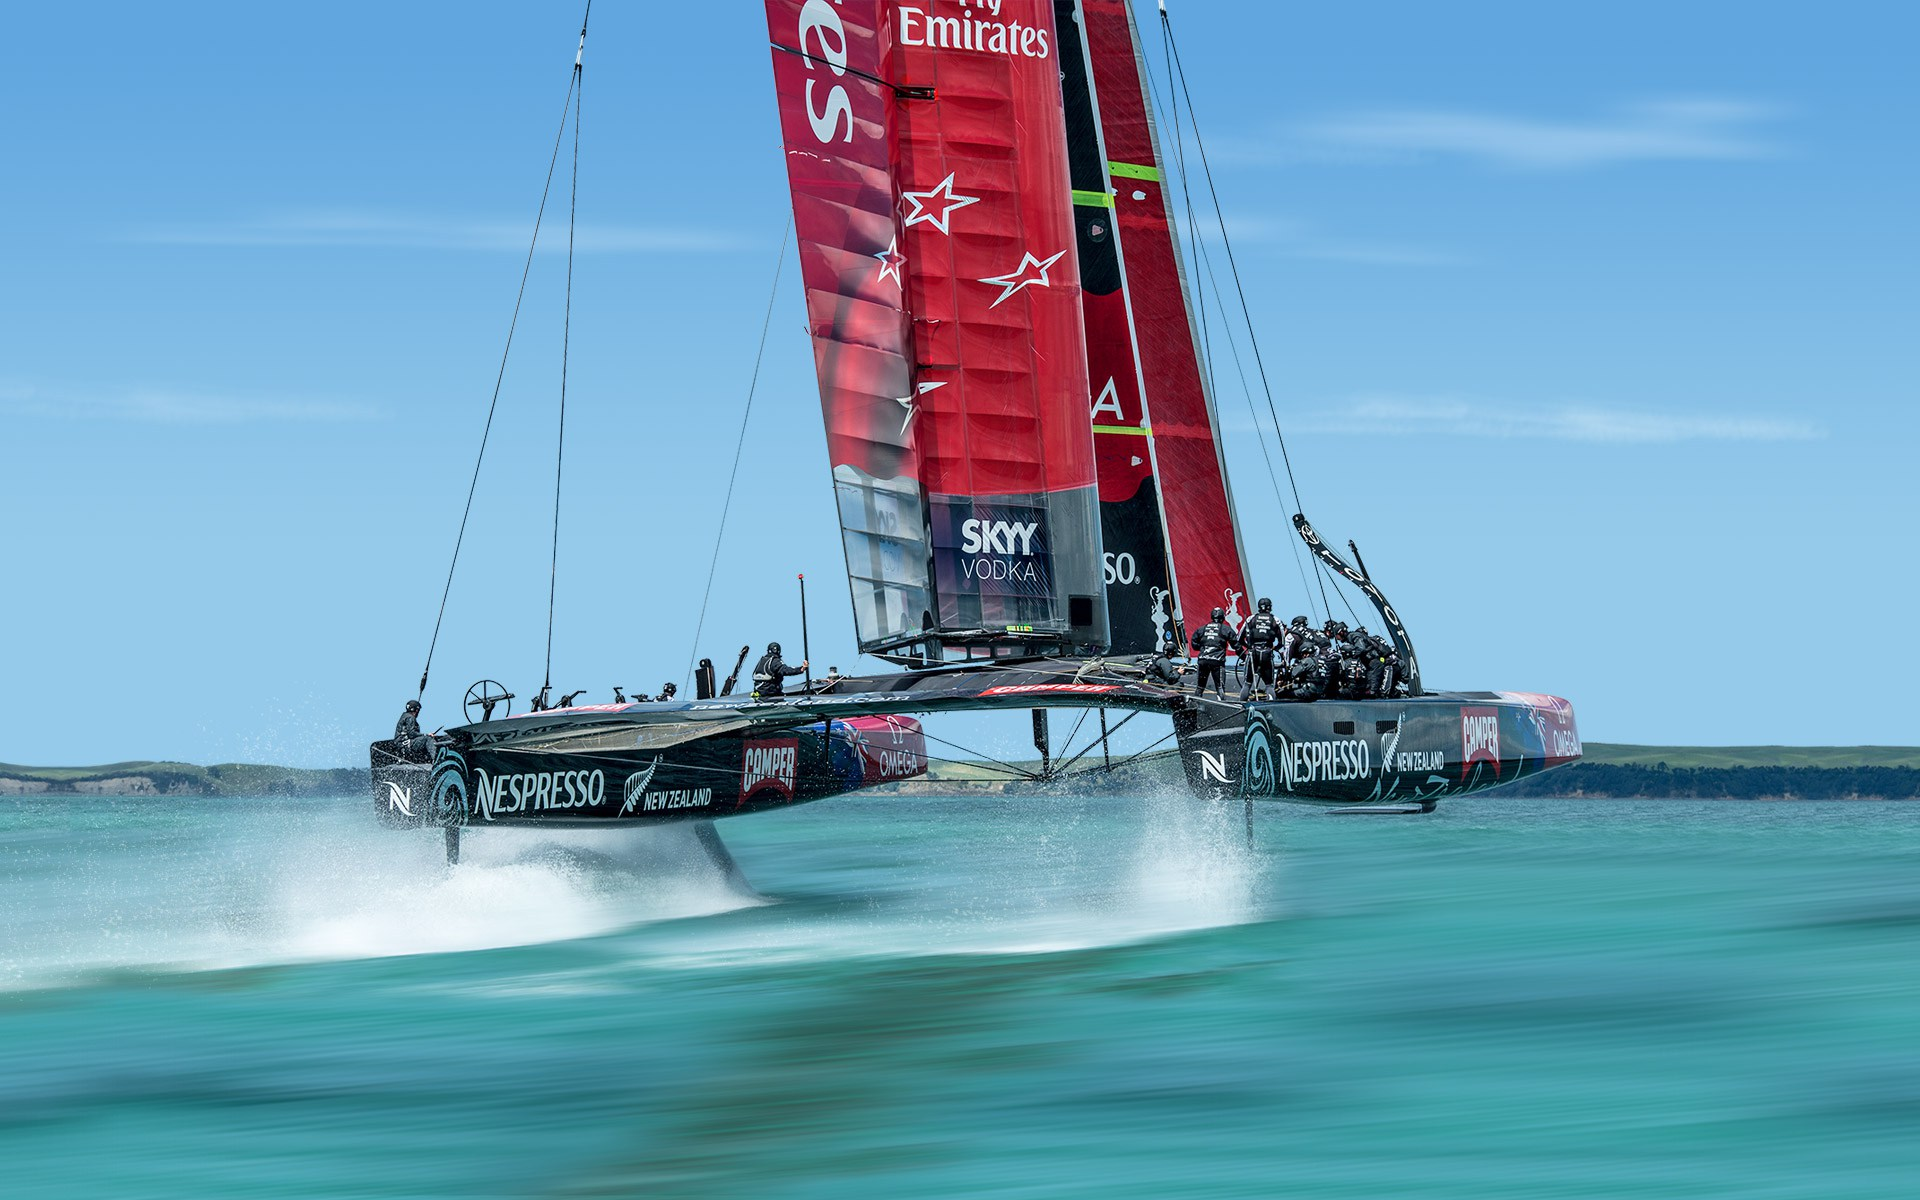 That America's Cup Buzz